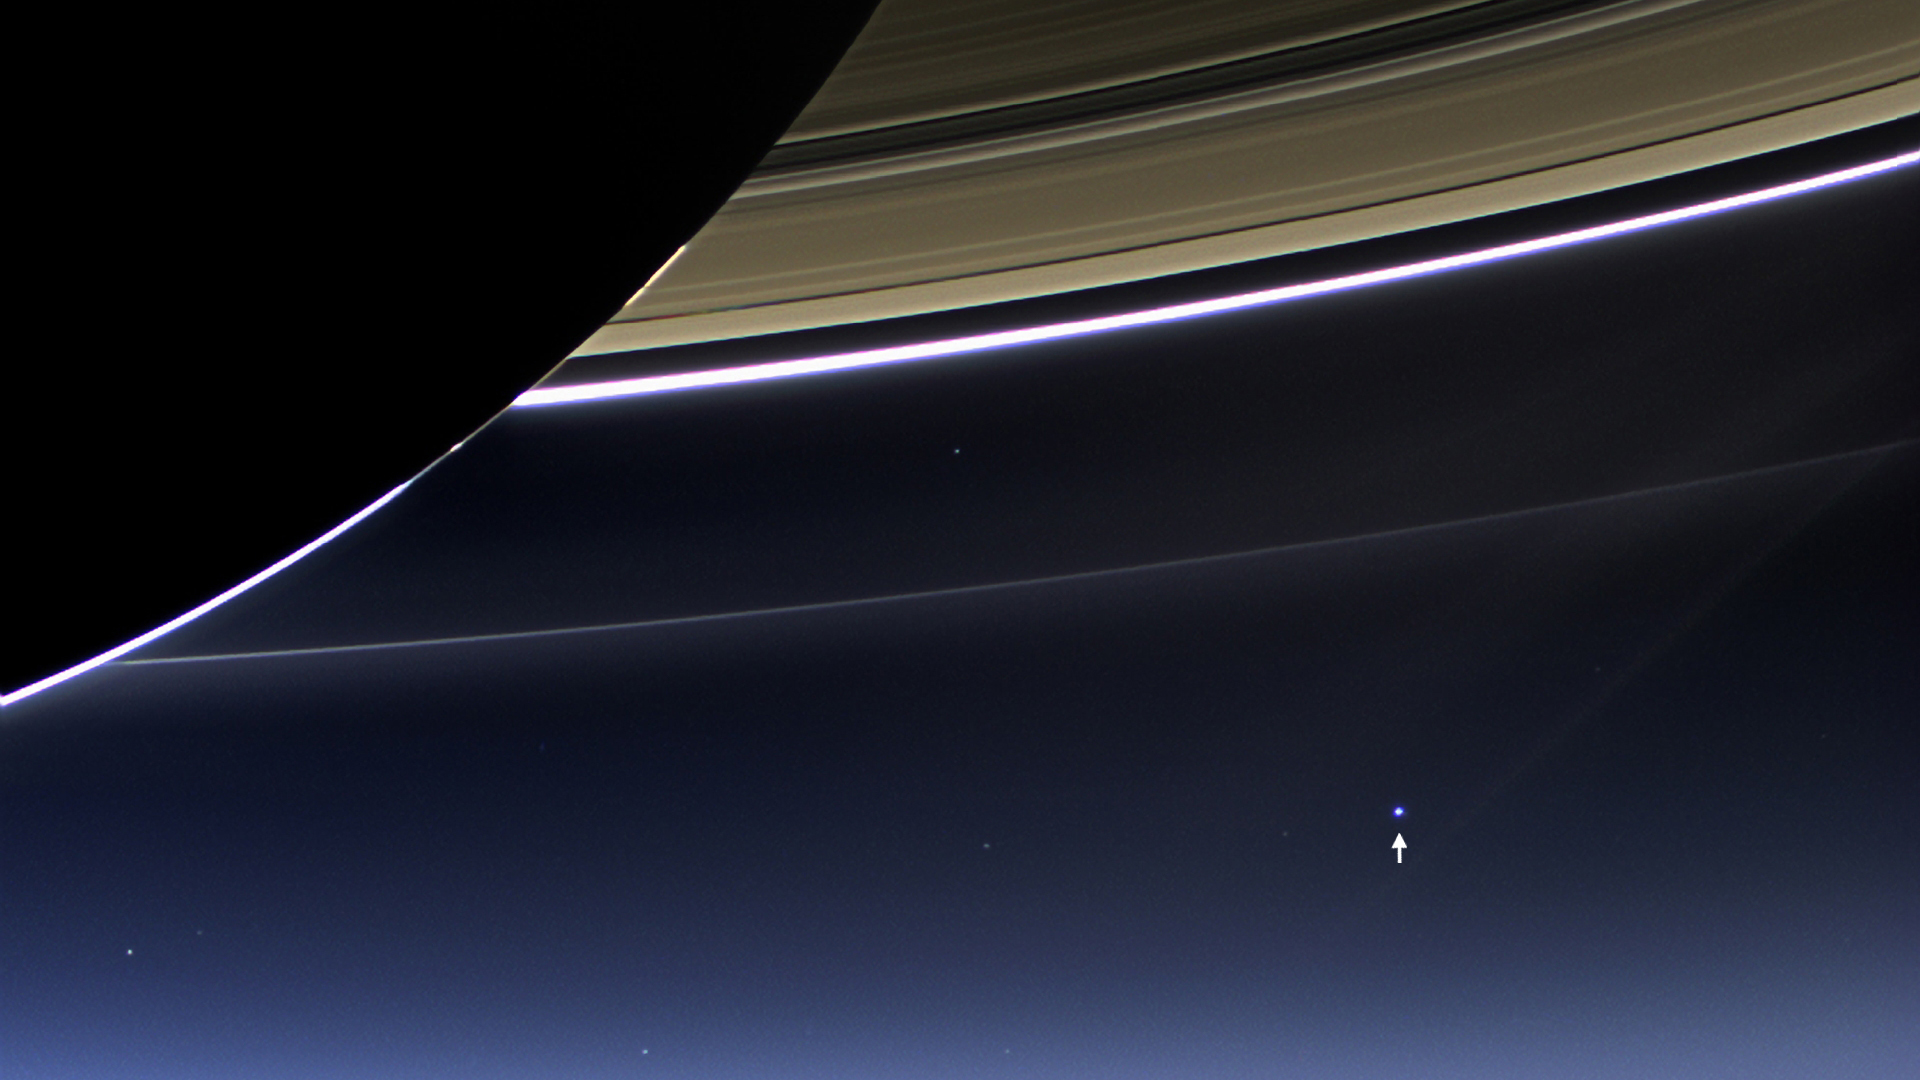 http://www.nasa.gov/sites/default/files/20130722_annotated_earth-moon_from_saturn_1920x1080_1.jpg?itok=nlxq2GML